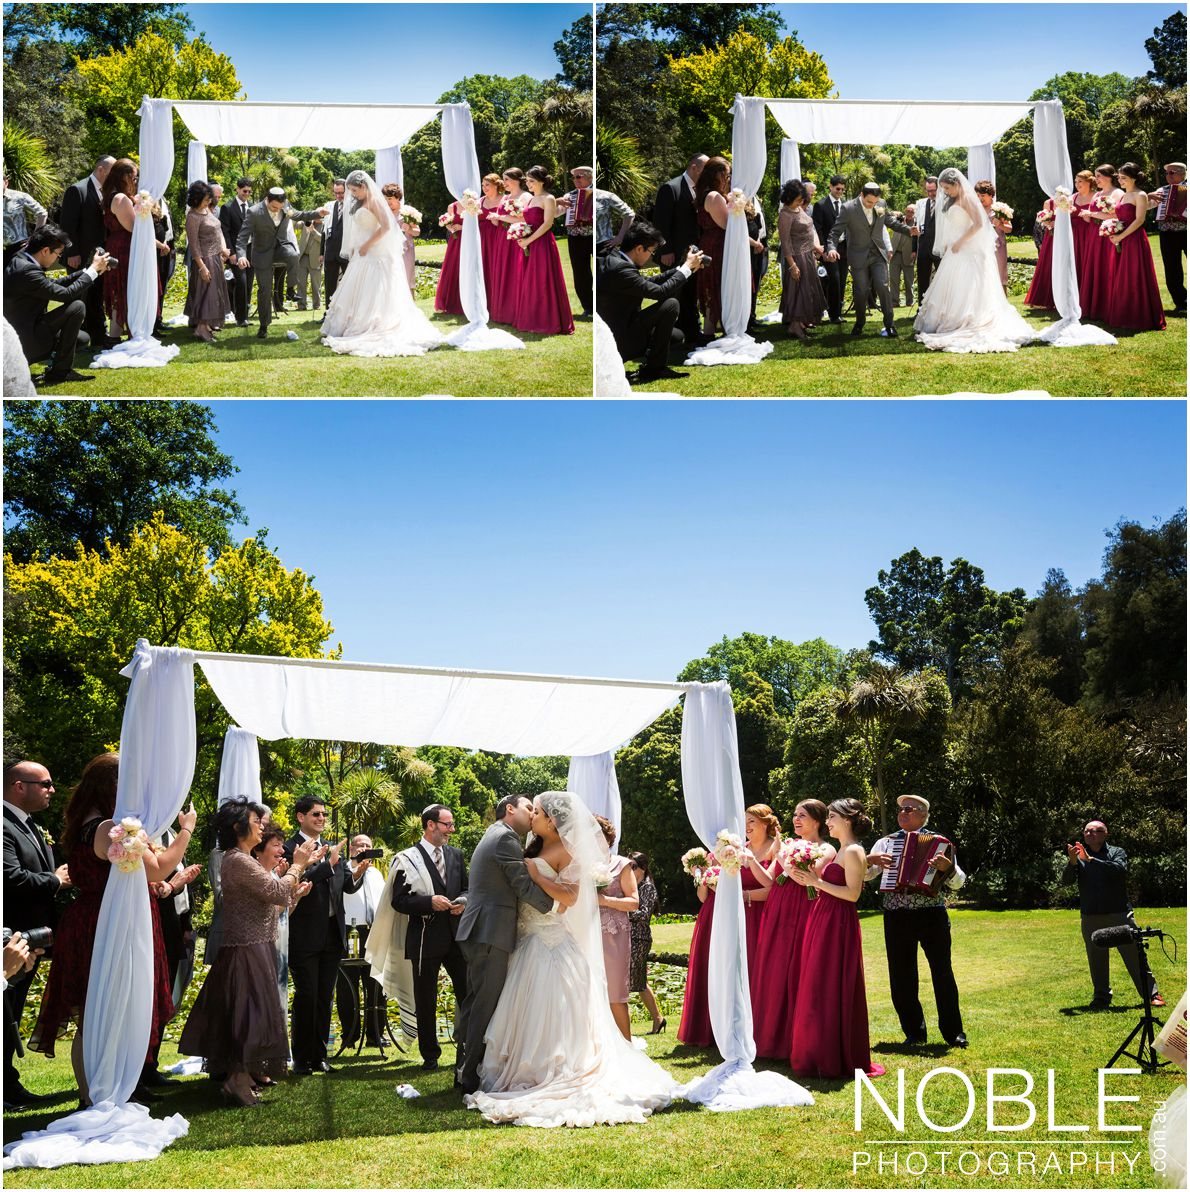 Wedding photography melbourne noble photography - Breakable wedding glass ...